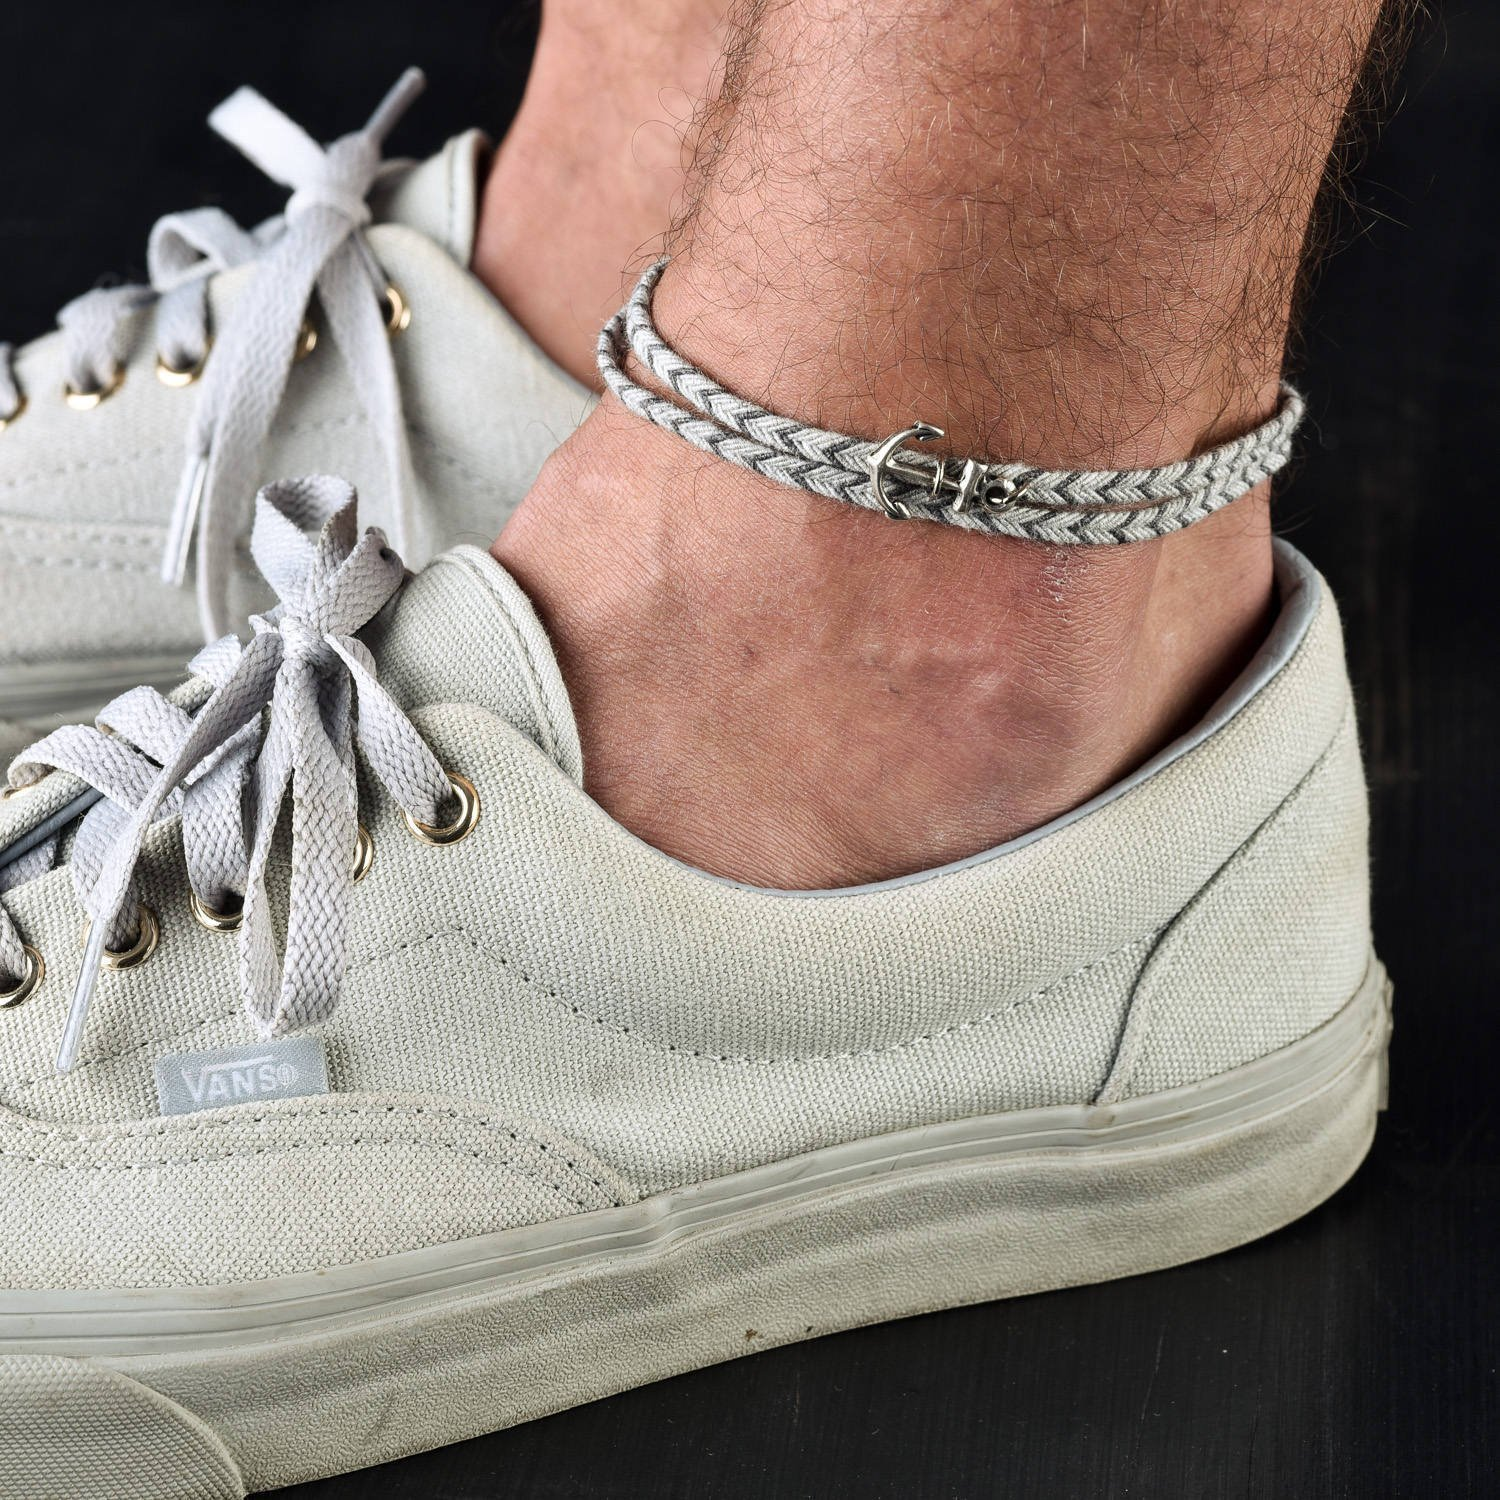 men should wear bracelets for anklets beautiful guys beach teen gift ankle wearing wedding oblacoder silver anklet